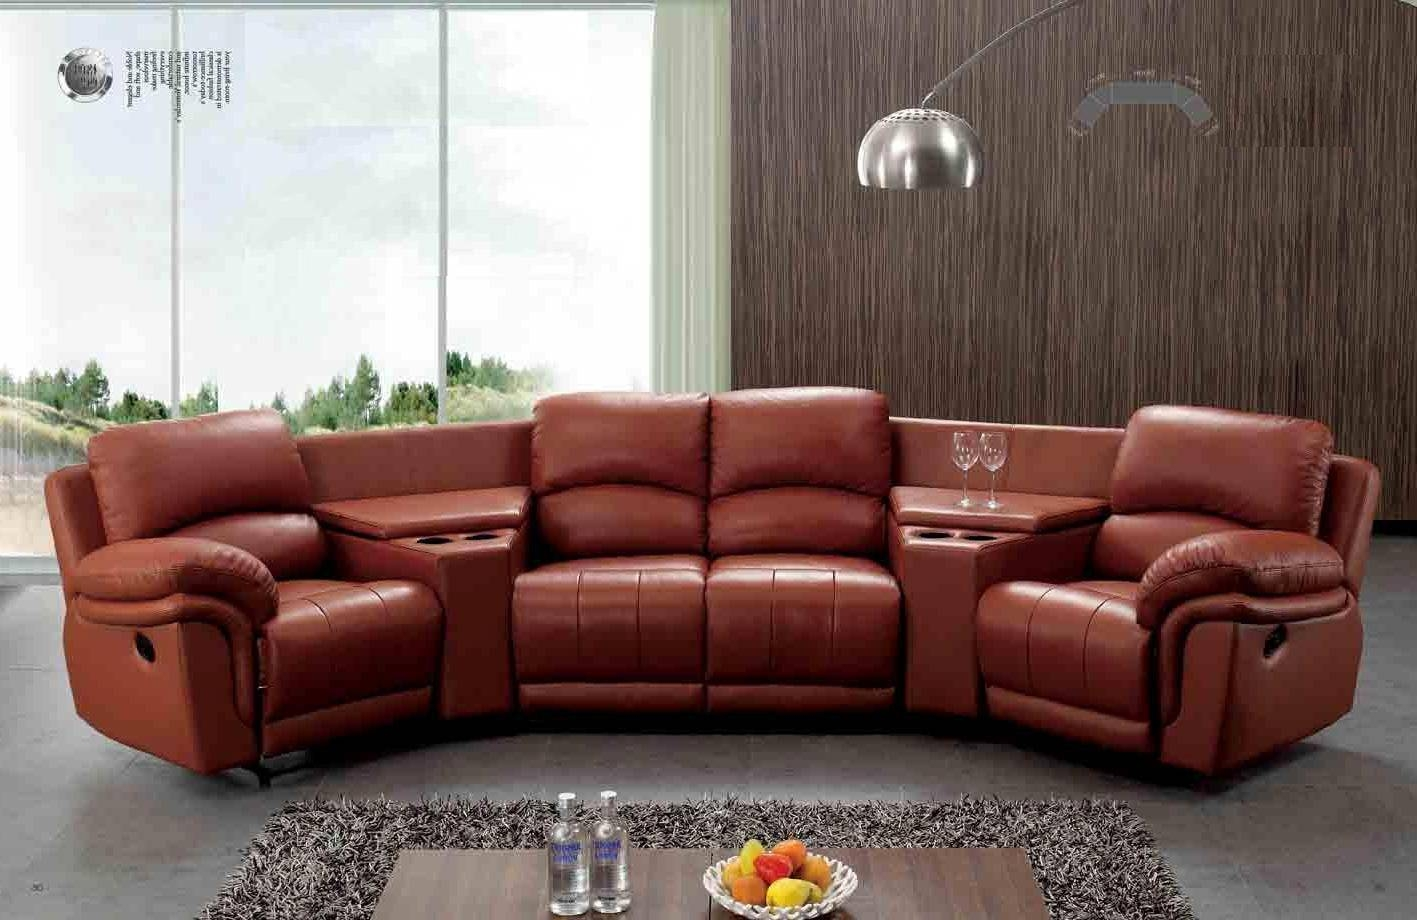 Sofas Center : Sofas Center Unusual Two Seater Reclinerfa Picture in Leather and Material Sofas (Image 29 of 30)